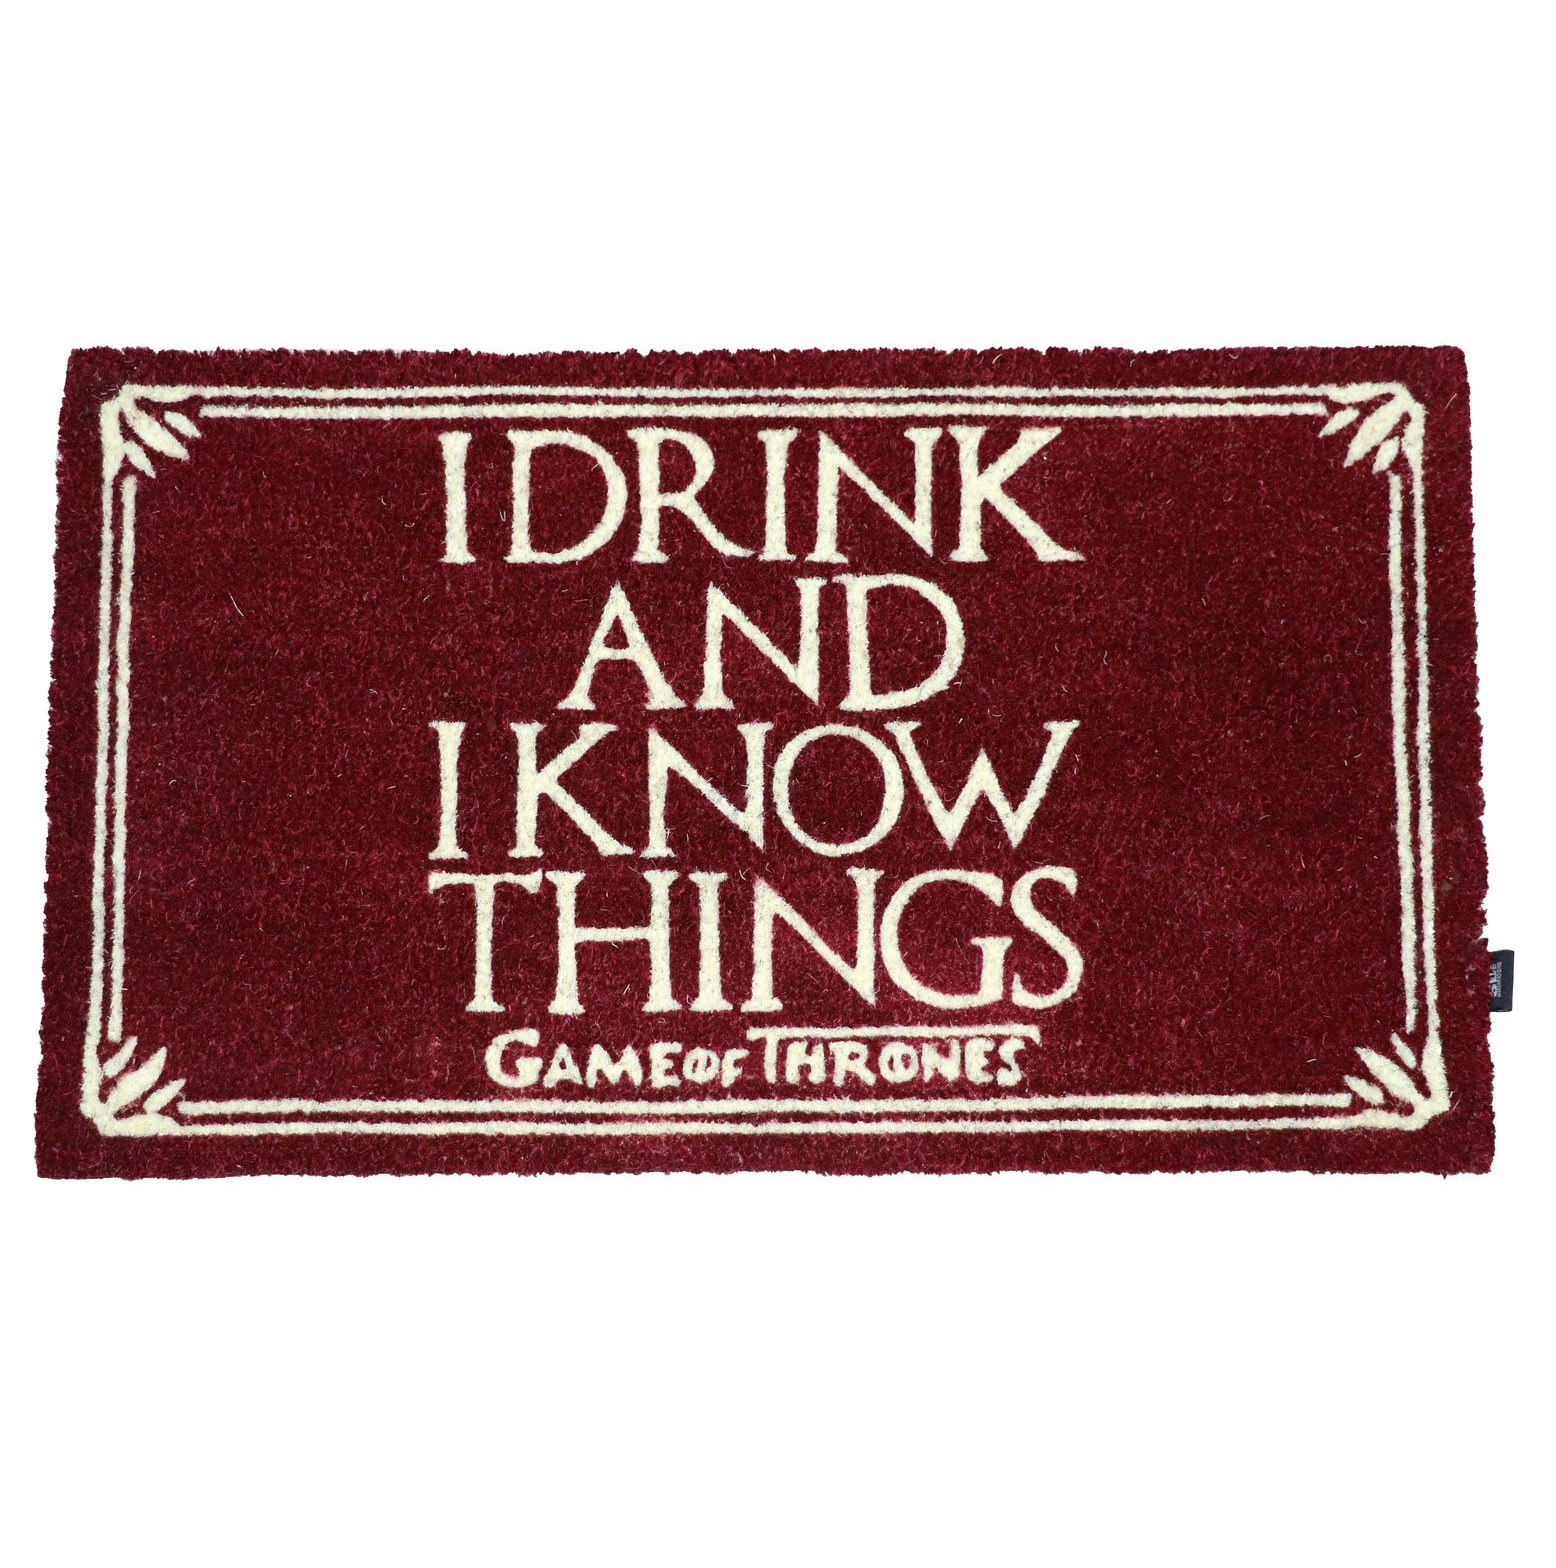 Rohožka - Game of Thrones Doormat I Drink And I Know Things 43 x 72 cm